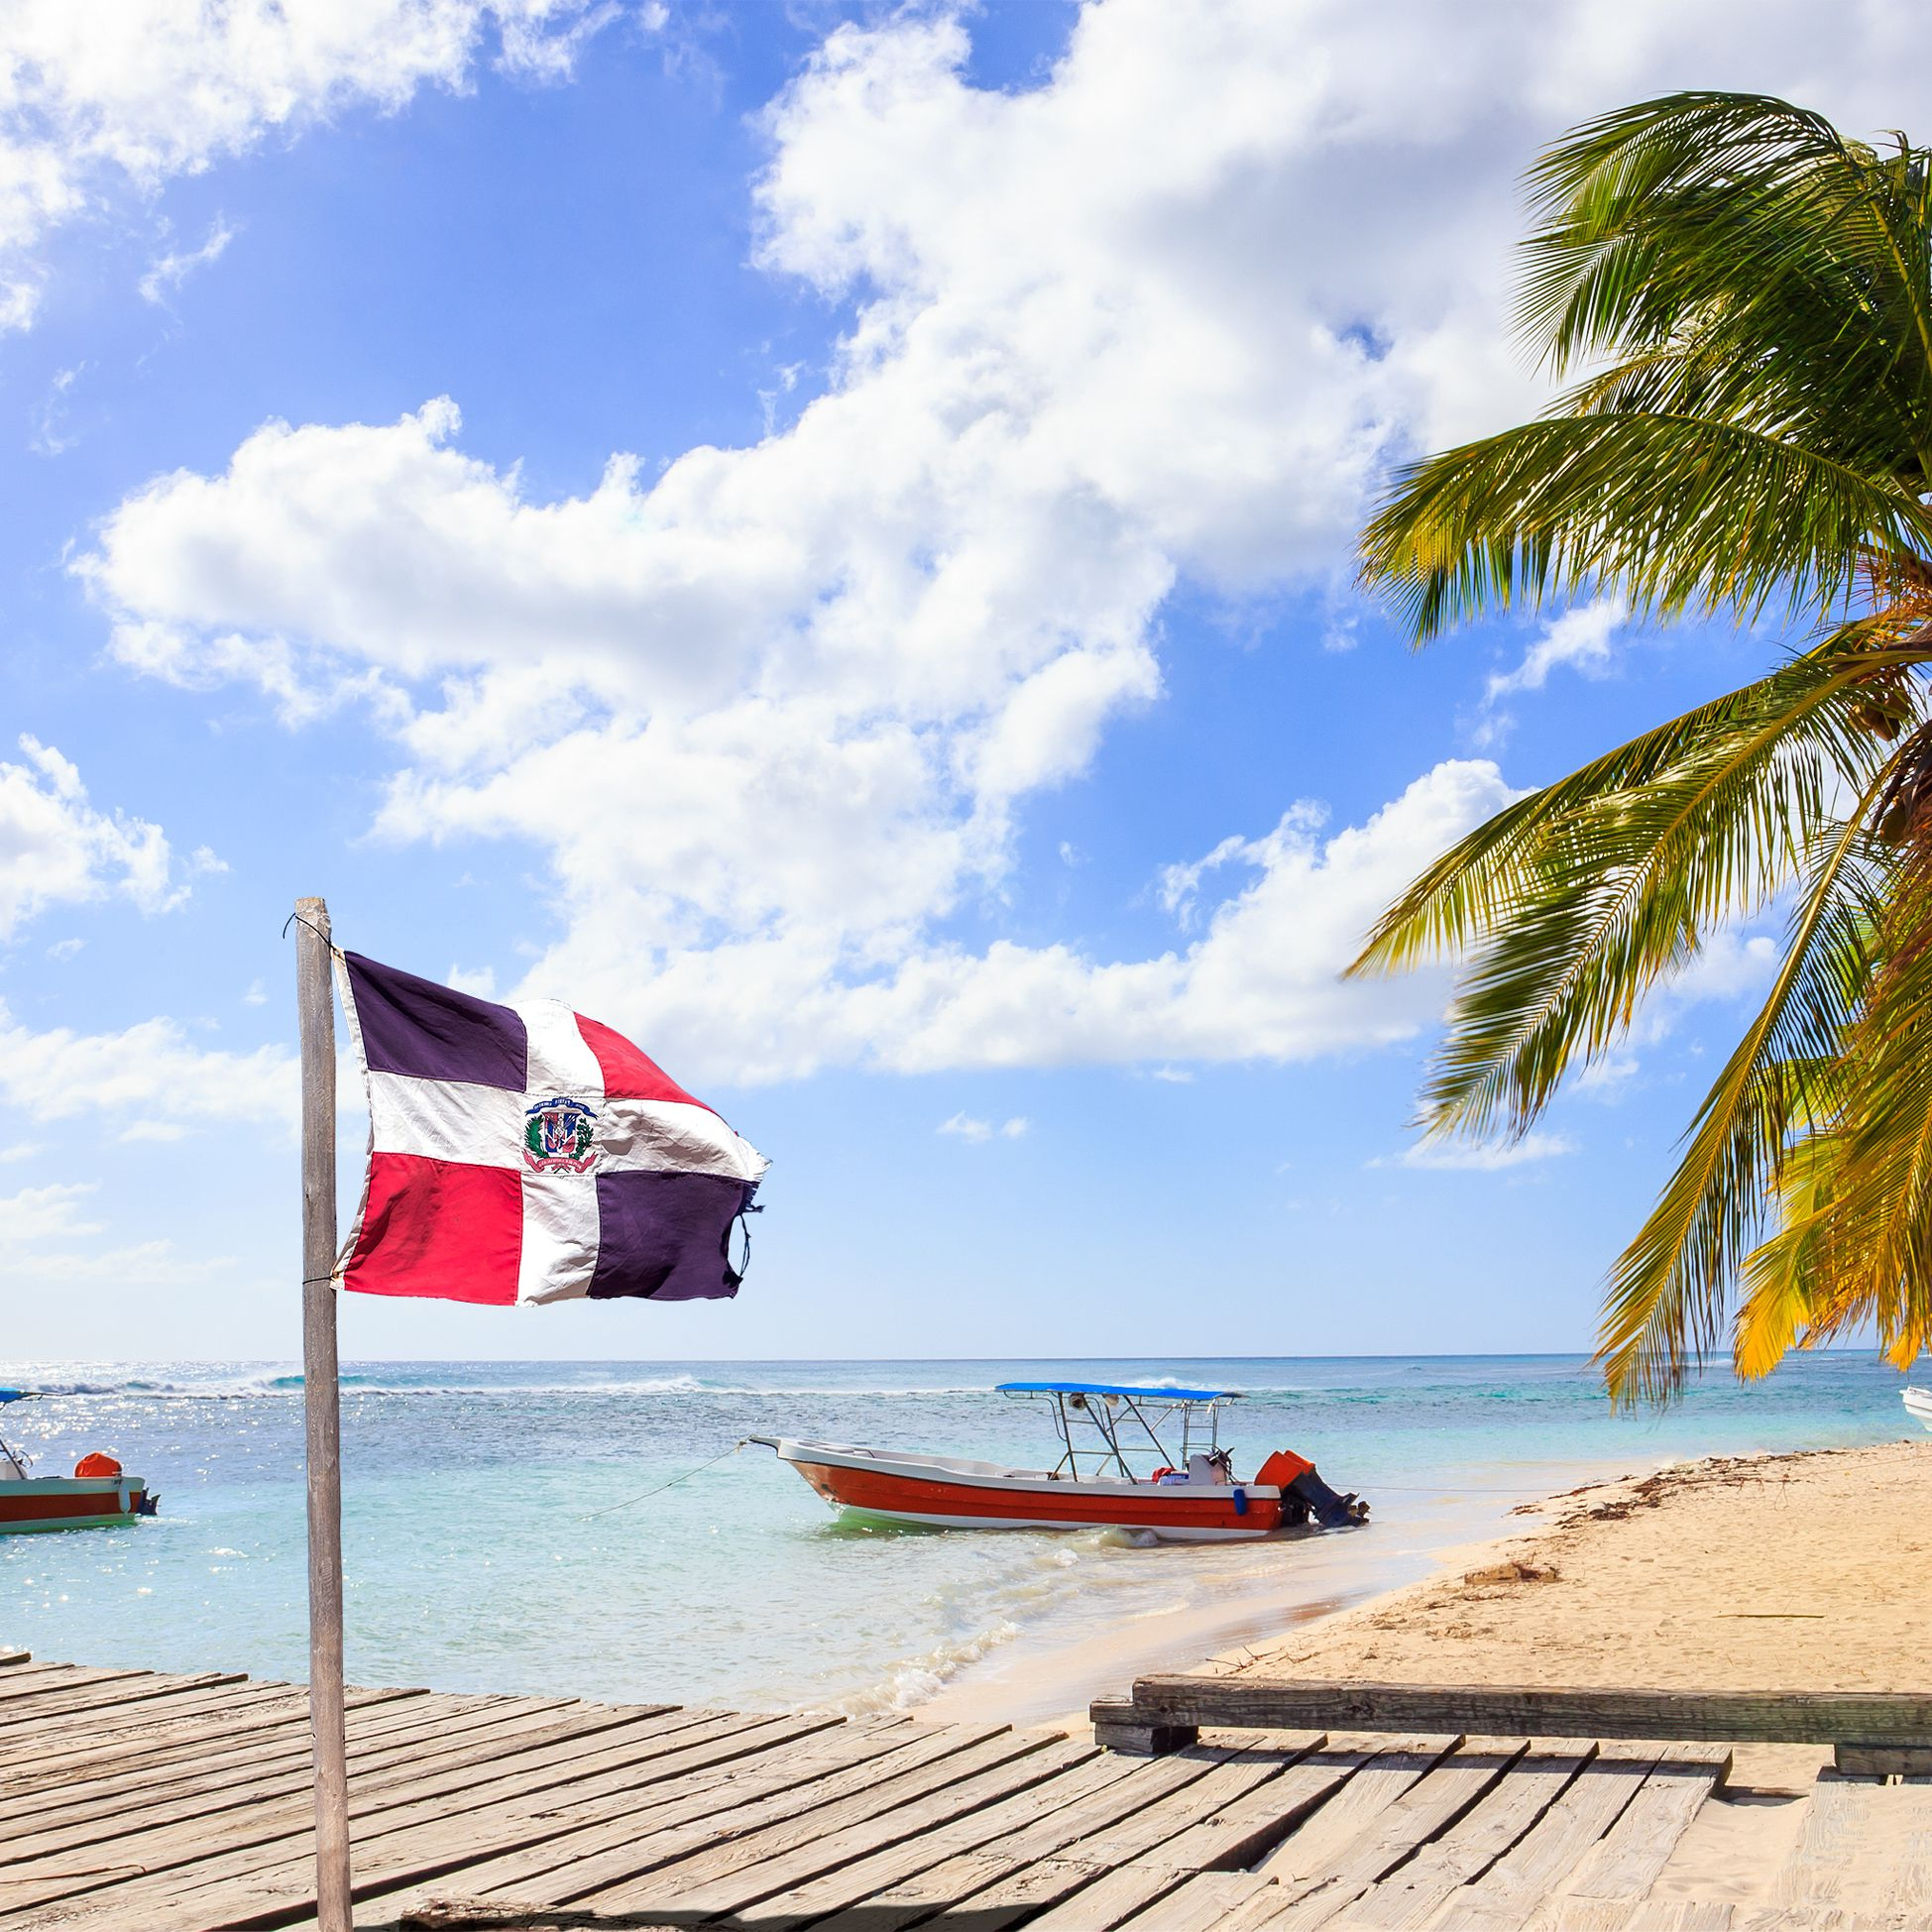 20 Best Things to Do in the Dominican Republic